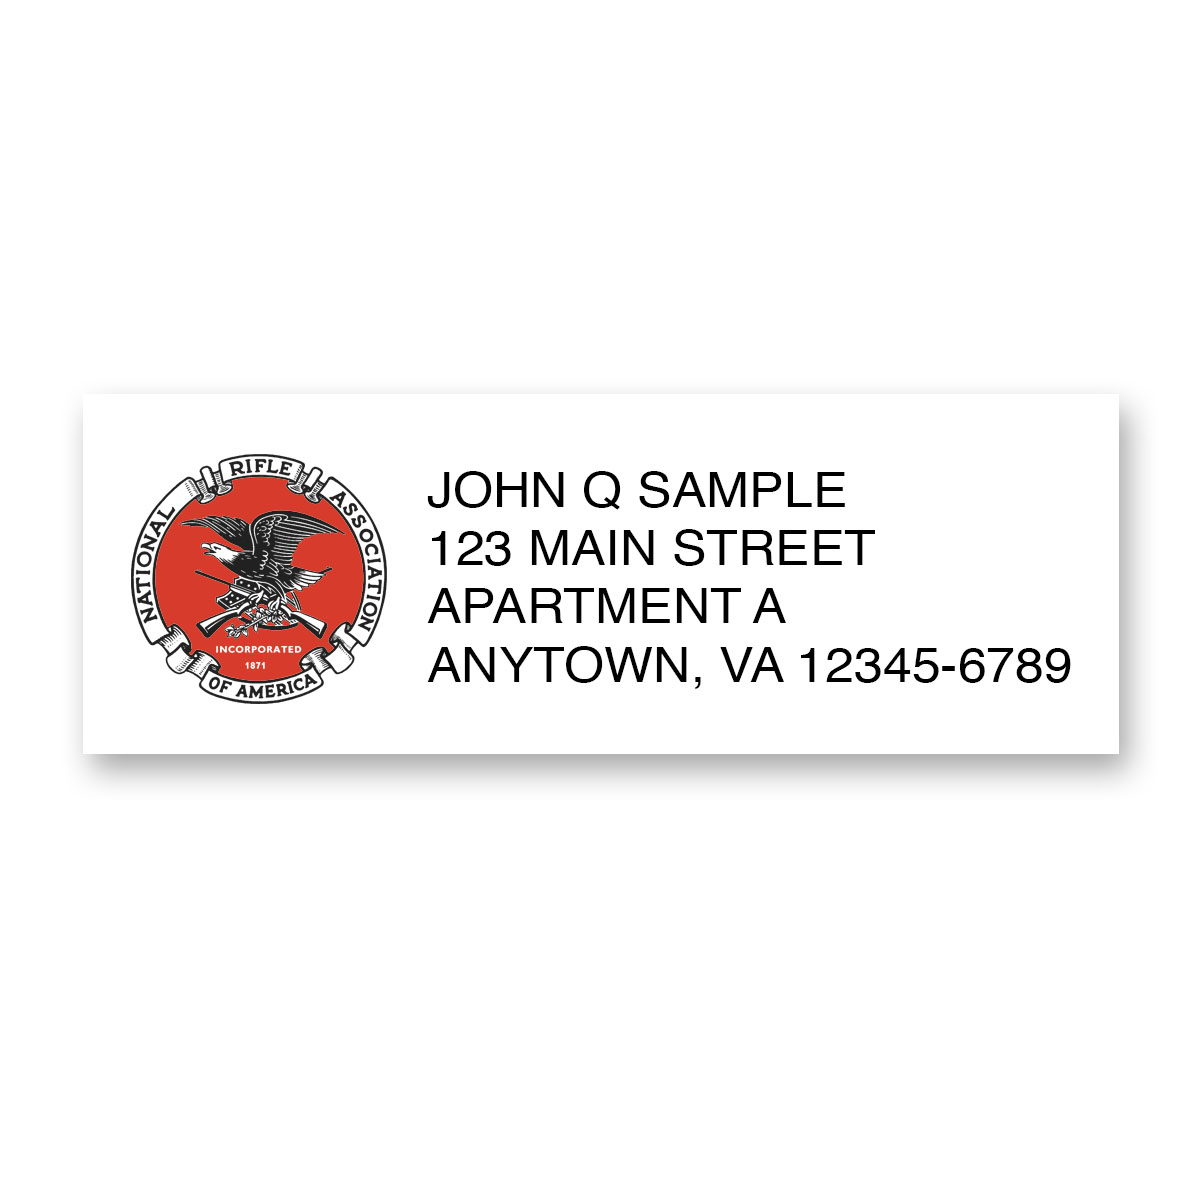 NRA return address label